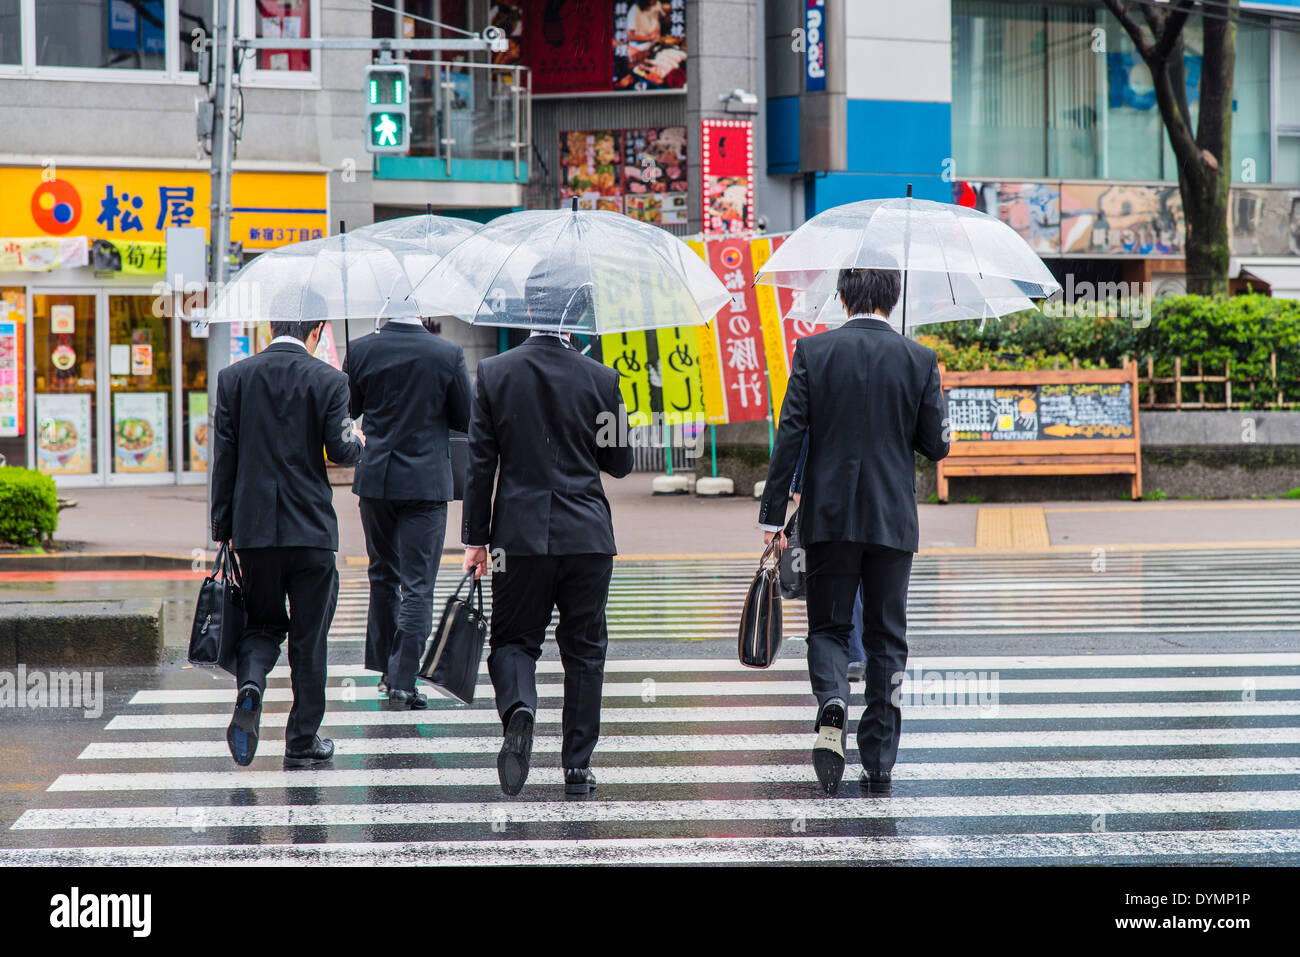 Adult male Japanese workers well dressed with umbrellas crossing the street, Shinjuku, Tokyo, Japan - Stock Image